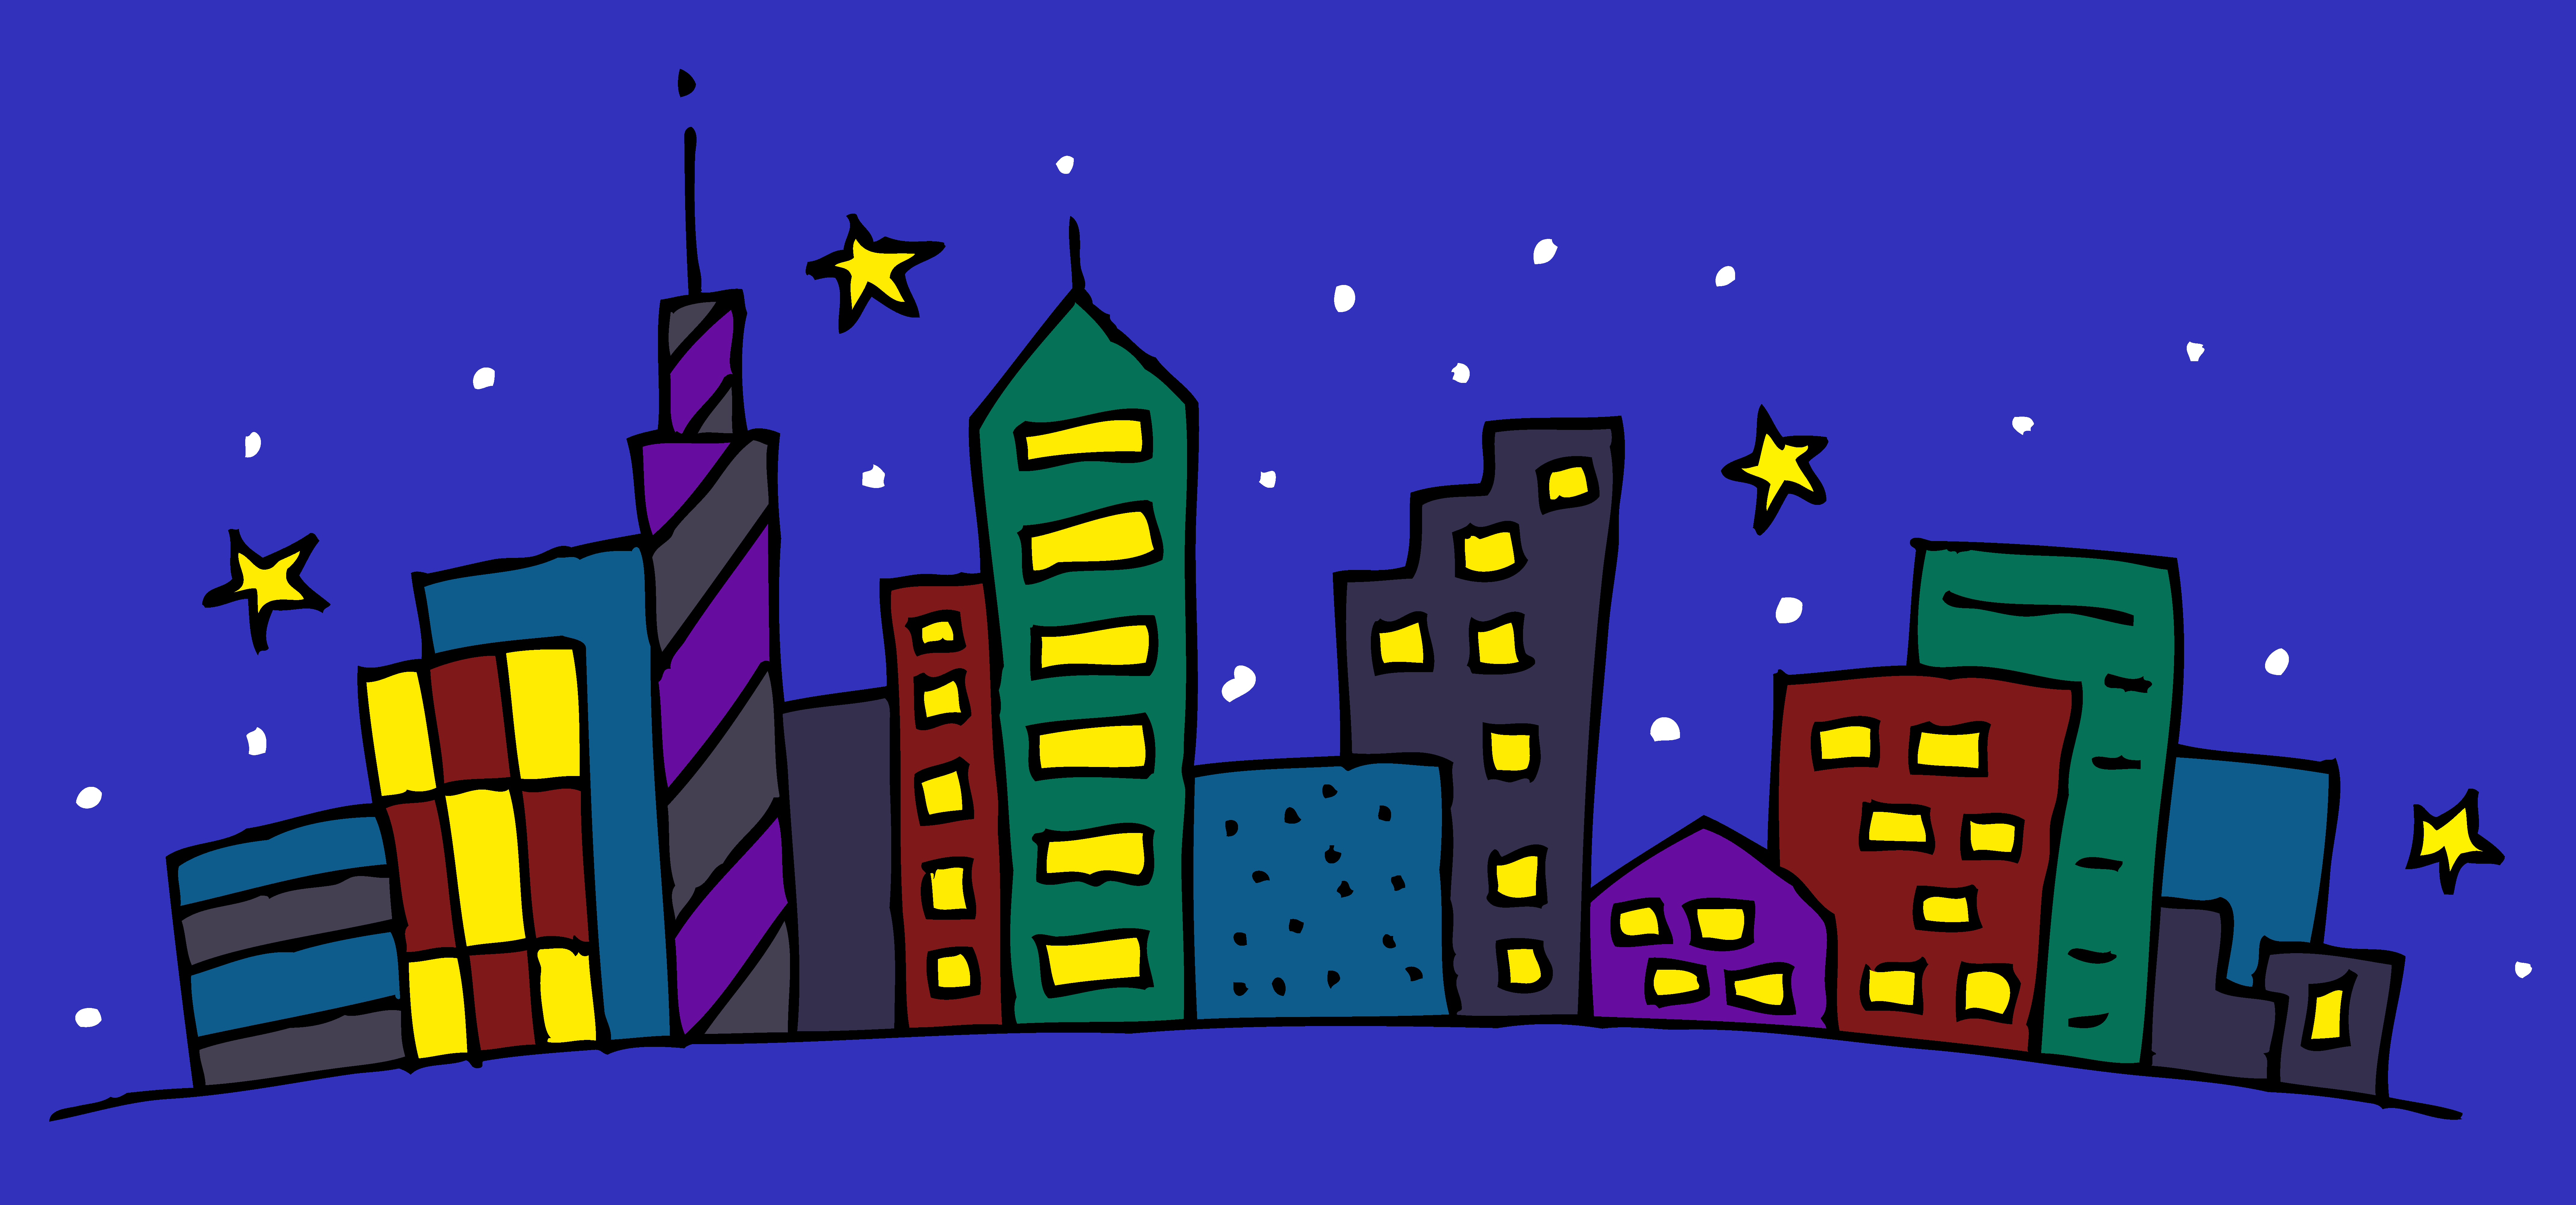 City clipart night time Clipart Buildings night night clipart